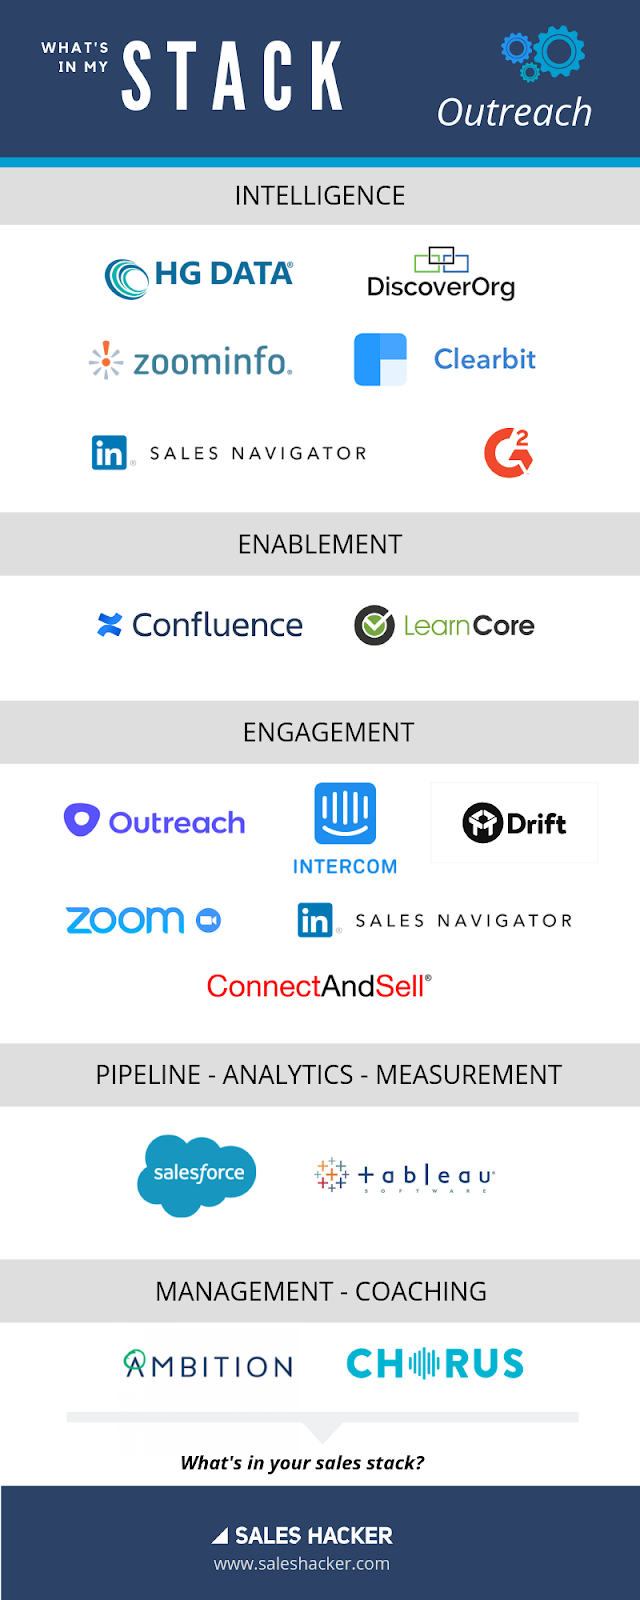 outreach.io sales stack